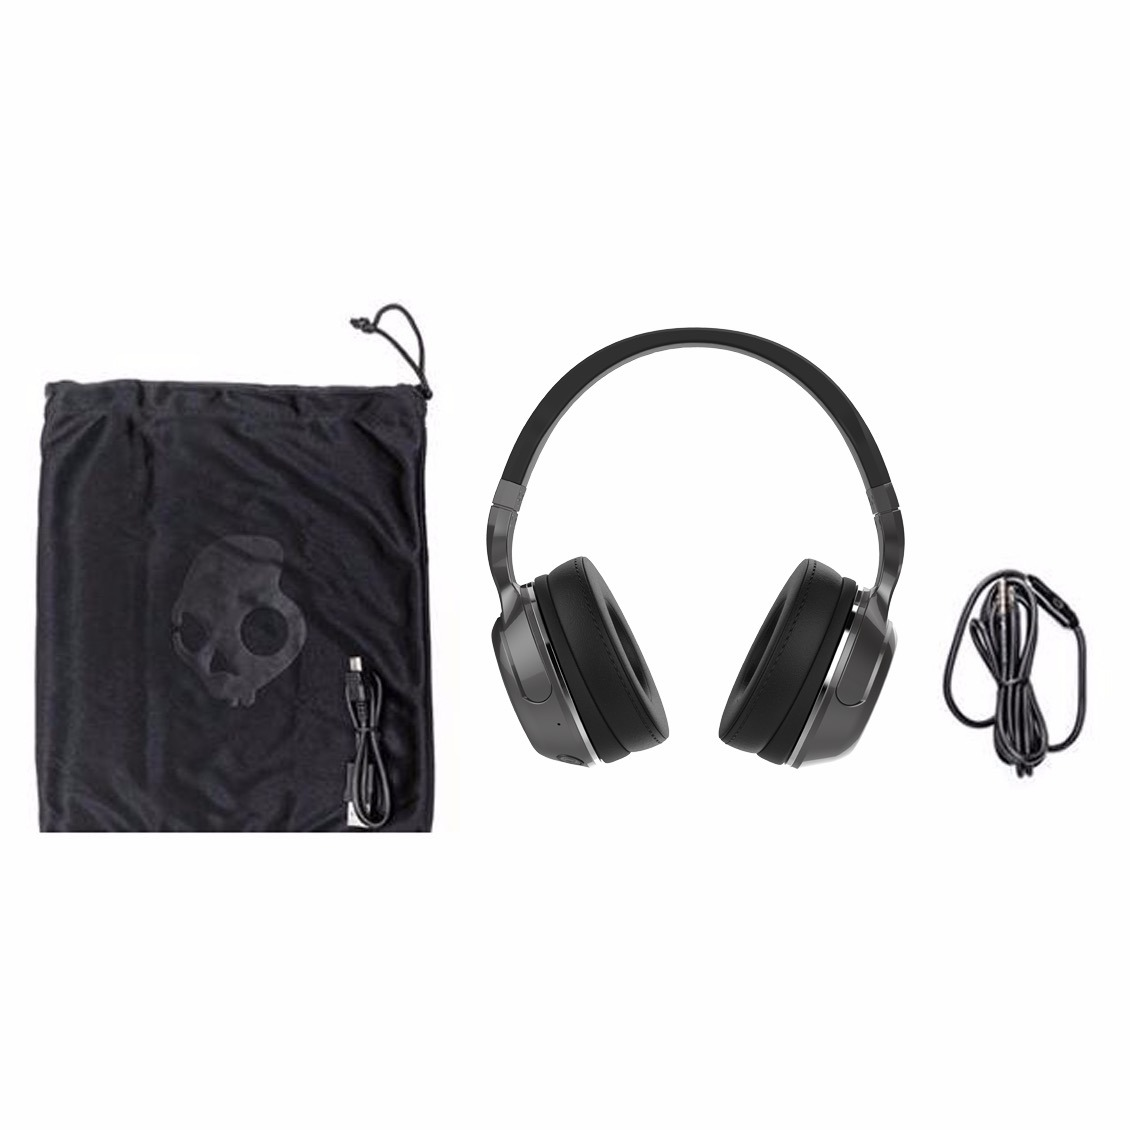 f73ab0f9f52 Details about Skullcandy Hesh 2 Over-Ear DJ Style Stereo Headphones w/ Wired  Mic Black/Silver